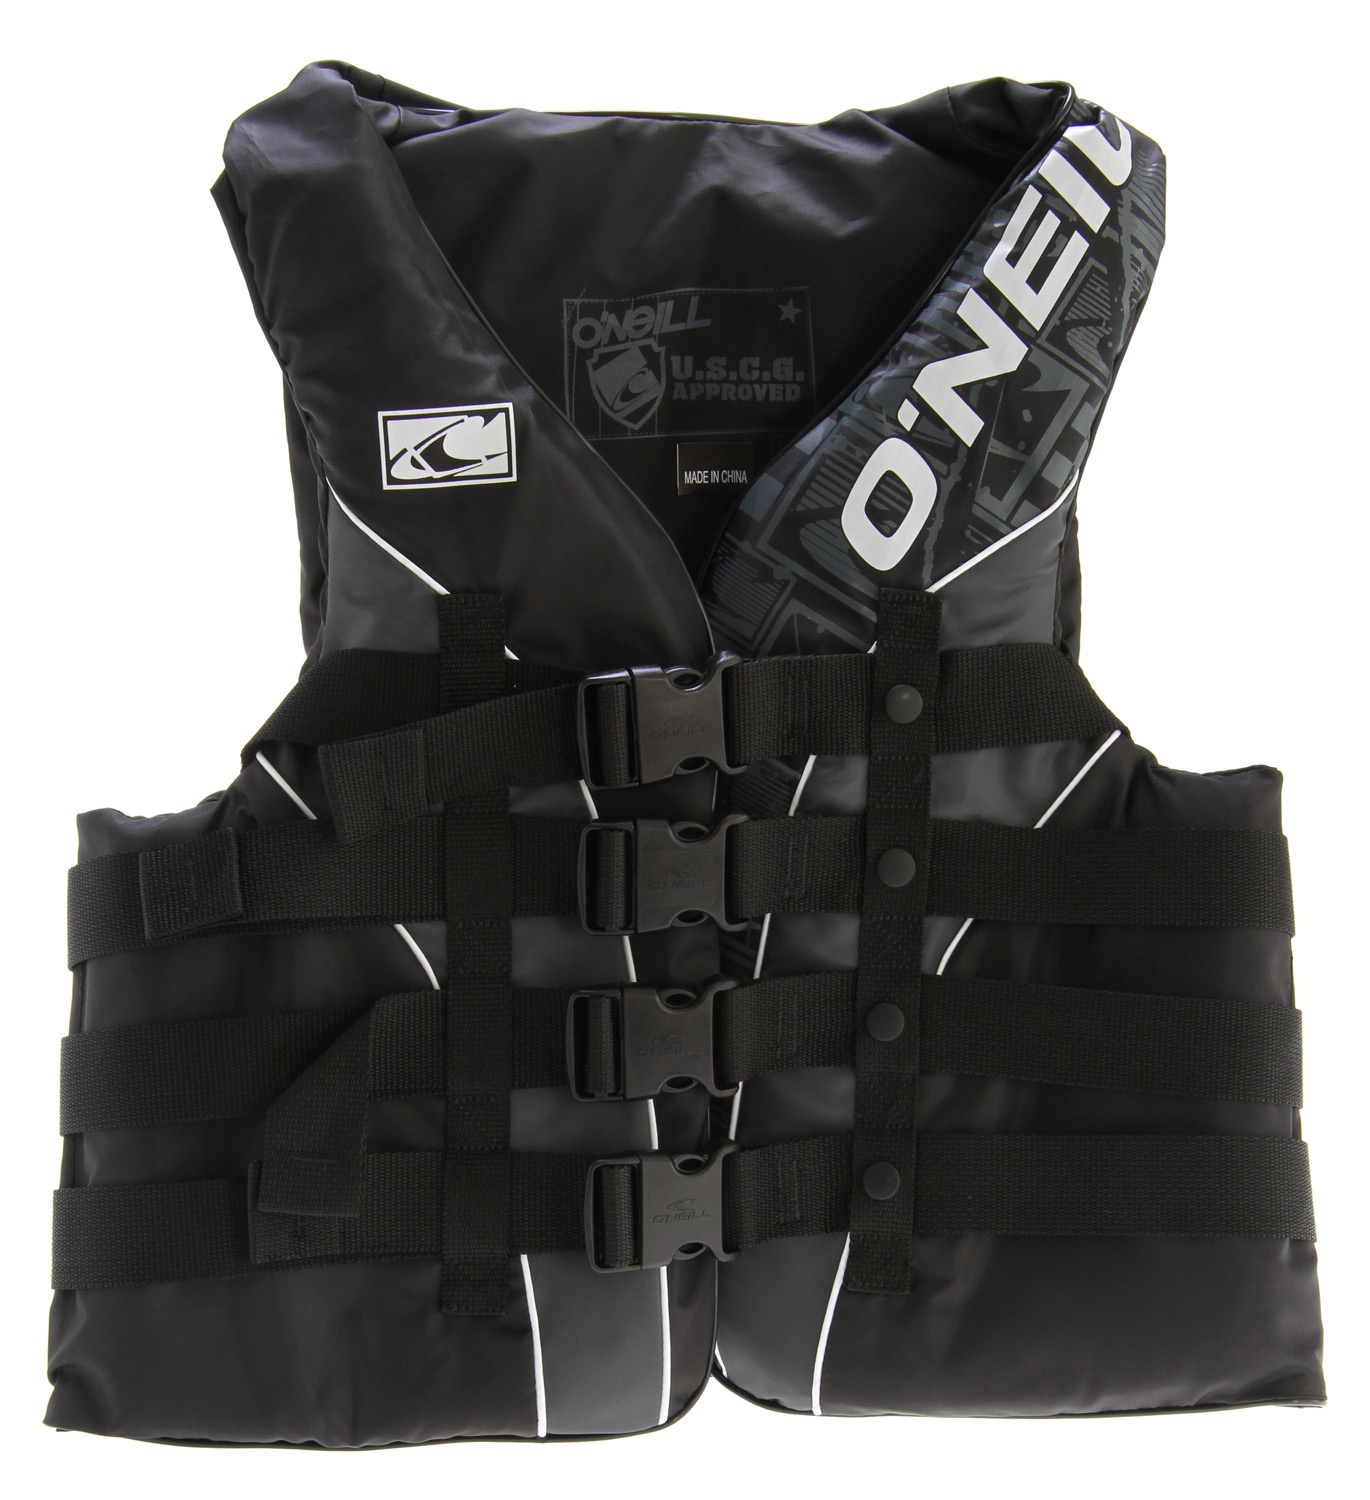 Wake Key Features of the O'Neill Superlite USCG Wakeboard Vest: USCG Approved ULC Approved CE Approved (EN393 Standard) Closed Cell PVC Marine Foam Coated Nylon Shell Soft and Comfortable Quick-Release Delrin Buckles - $29.95